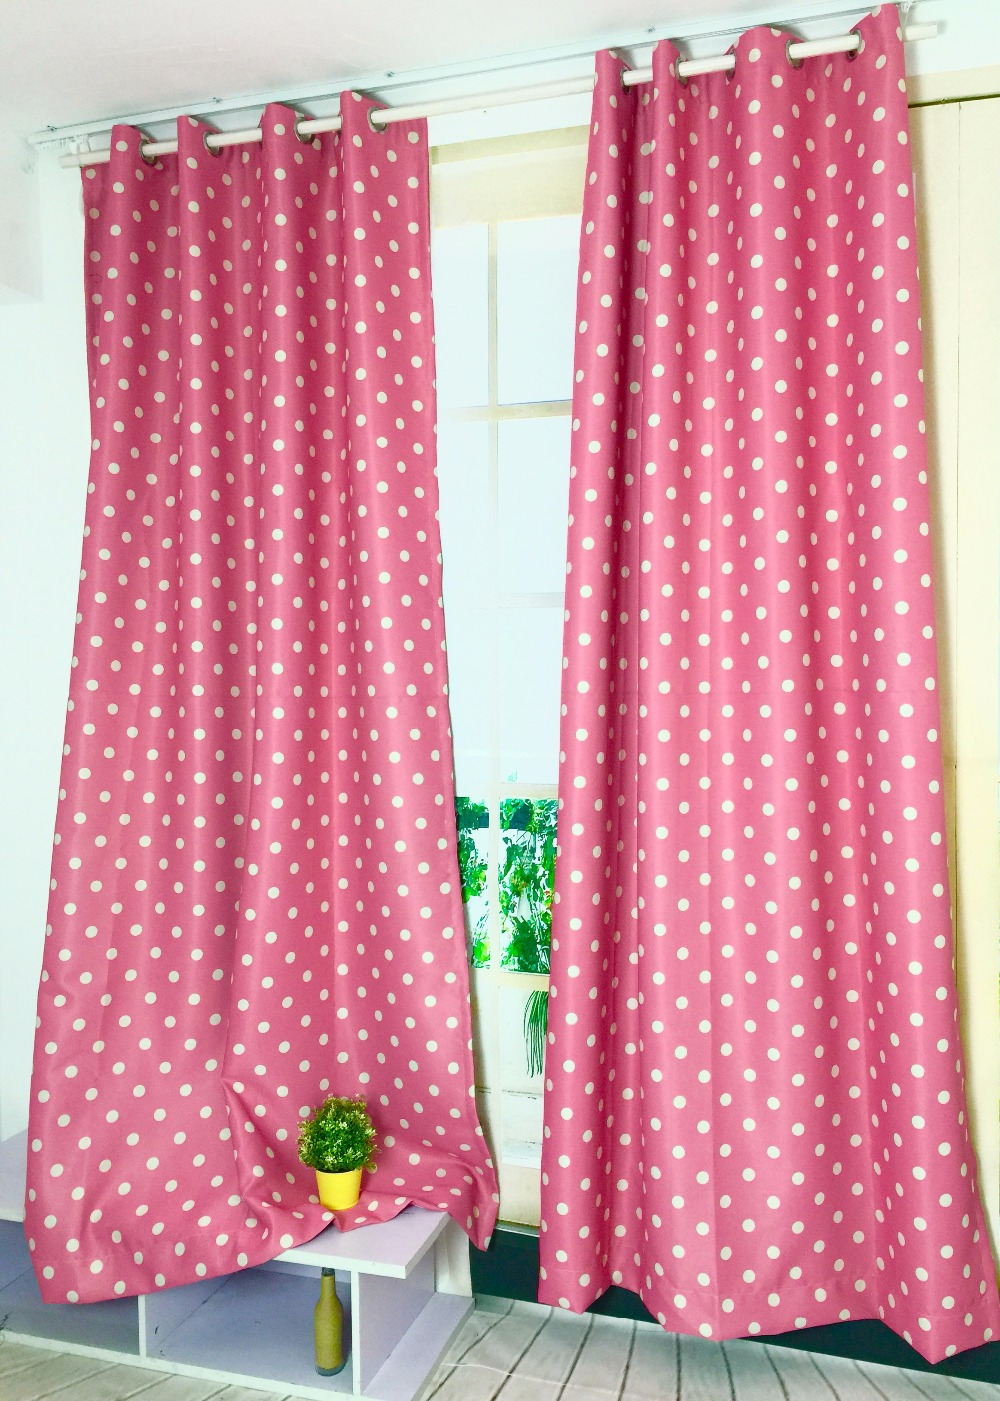 Pink and white polka dot curtains - New Arrival Blue Color With White Dots Shade Cloth Curtains Pink Polka Dot Curtains For Children